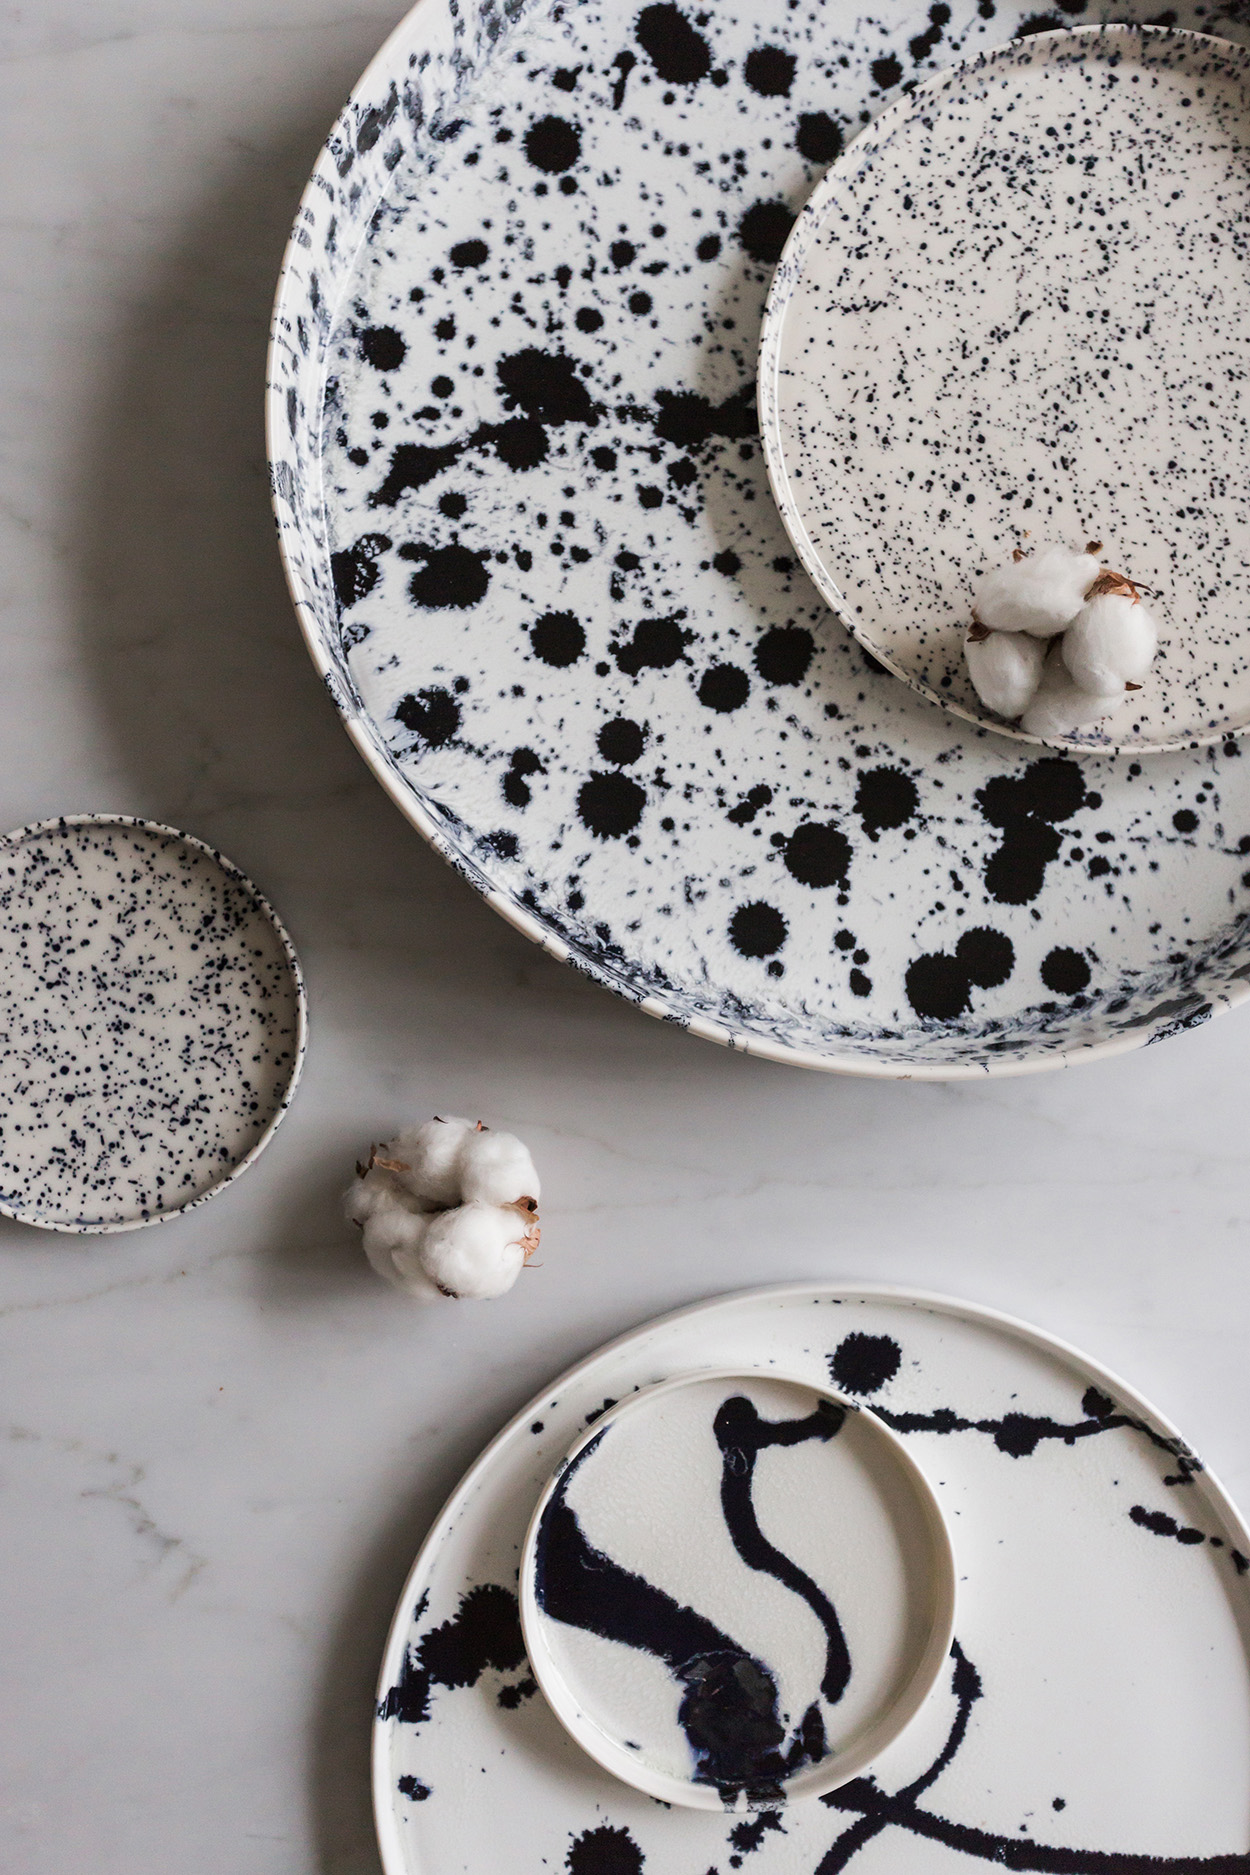 Geometric Shapes And Patterns Coco Lapine Designcoco